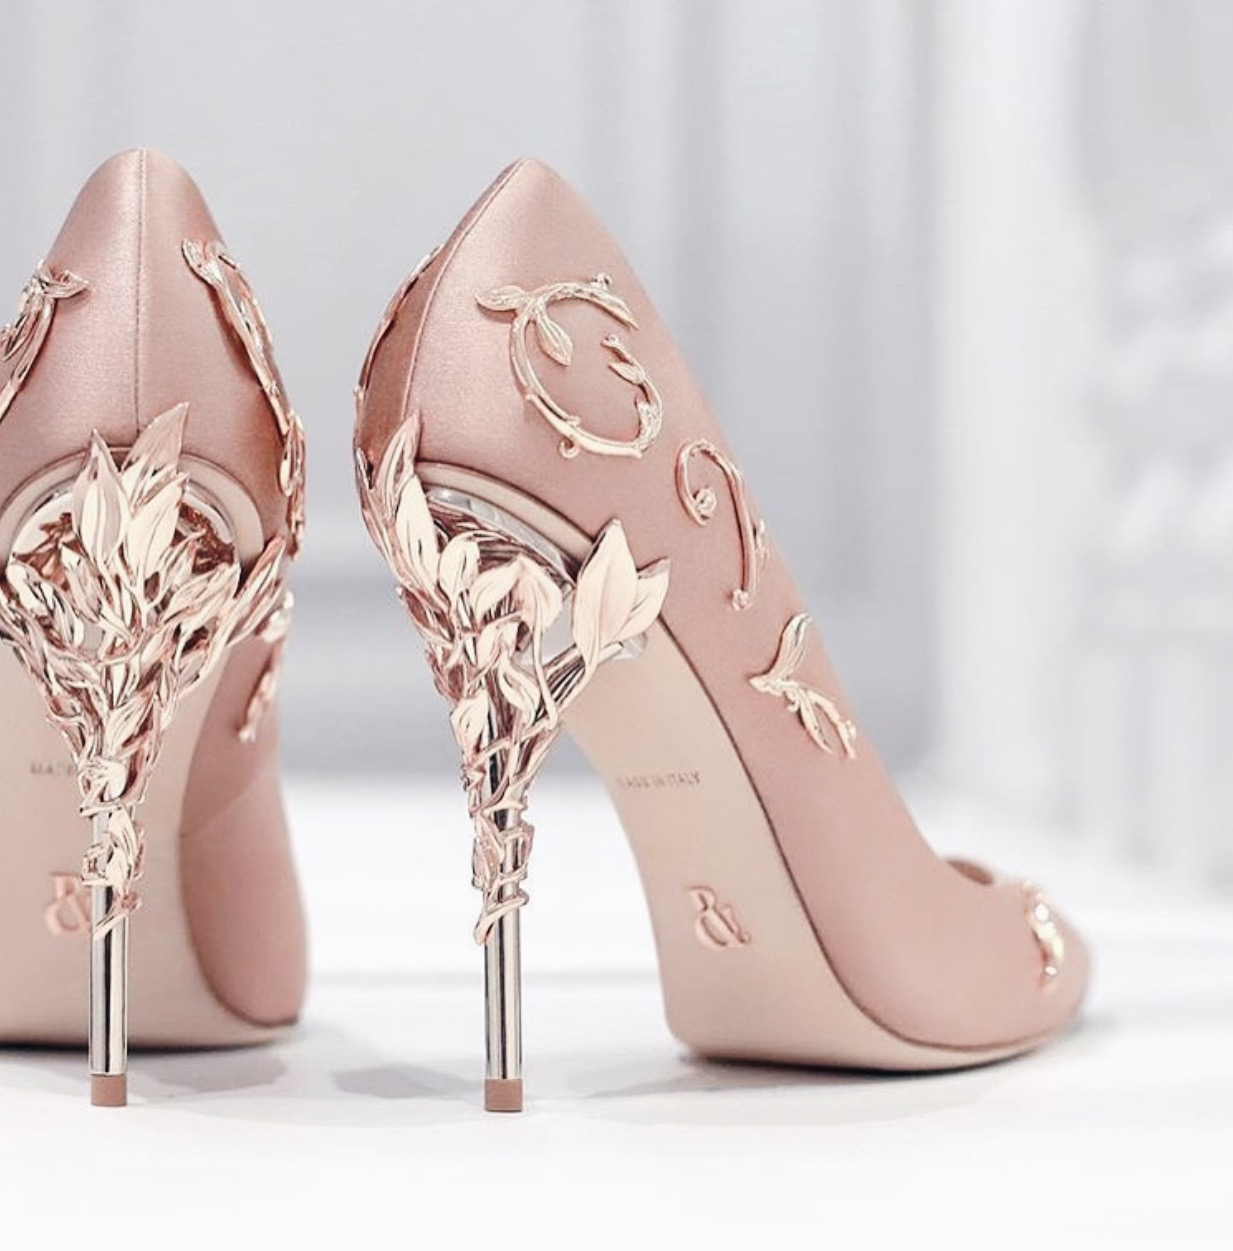 Ralph-and-Russo-Eden-Pumps-For-All-Shoe-Lovers-Vivi-Brizuela-PinkOrchidMakeup